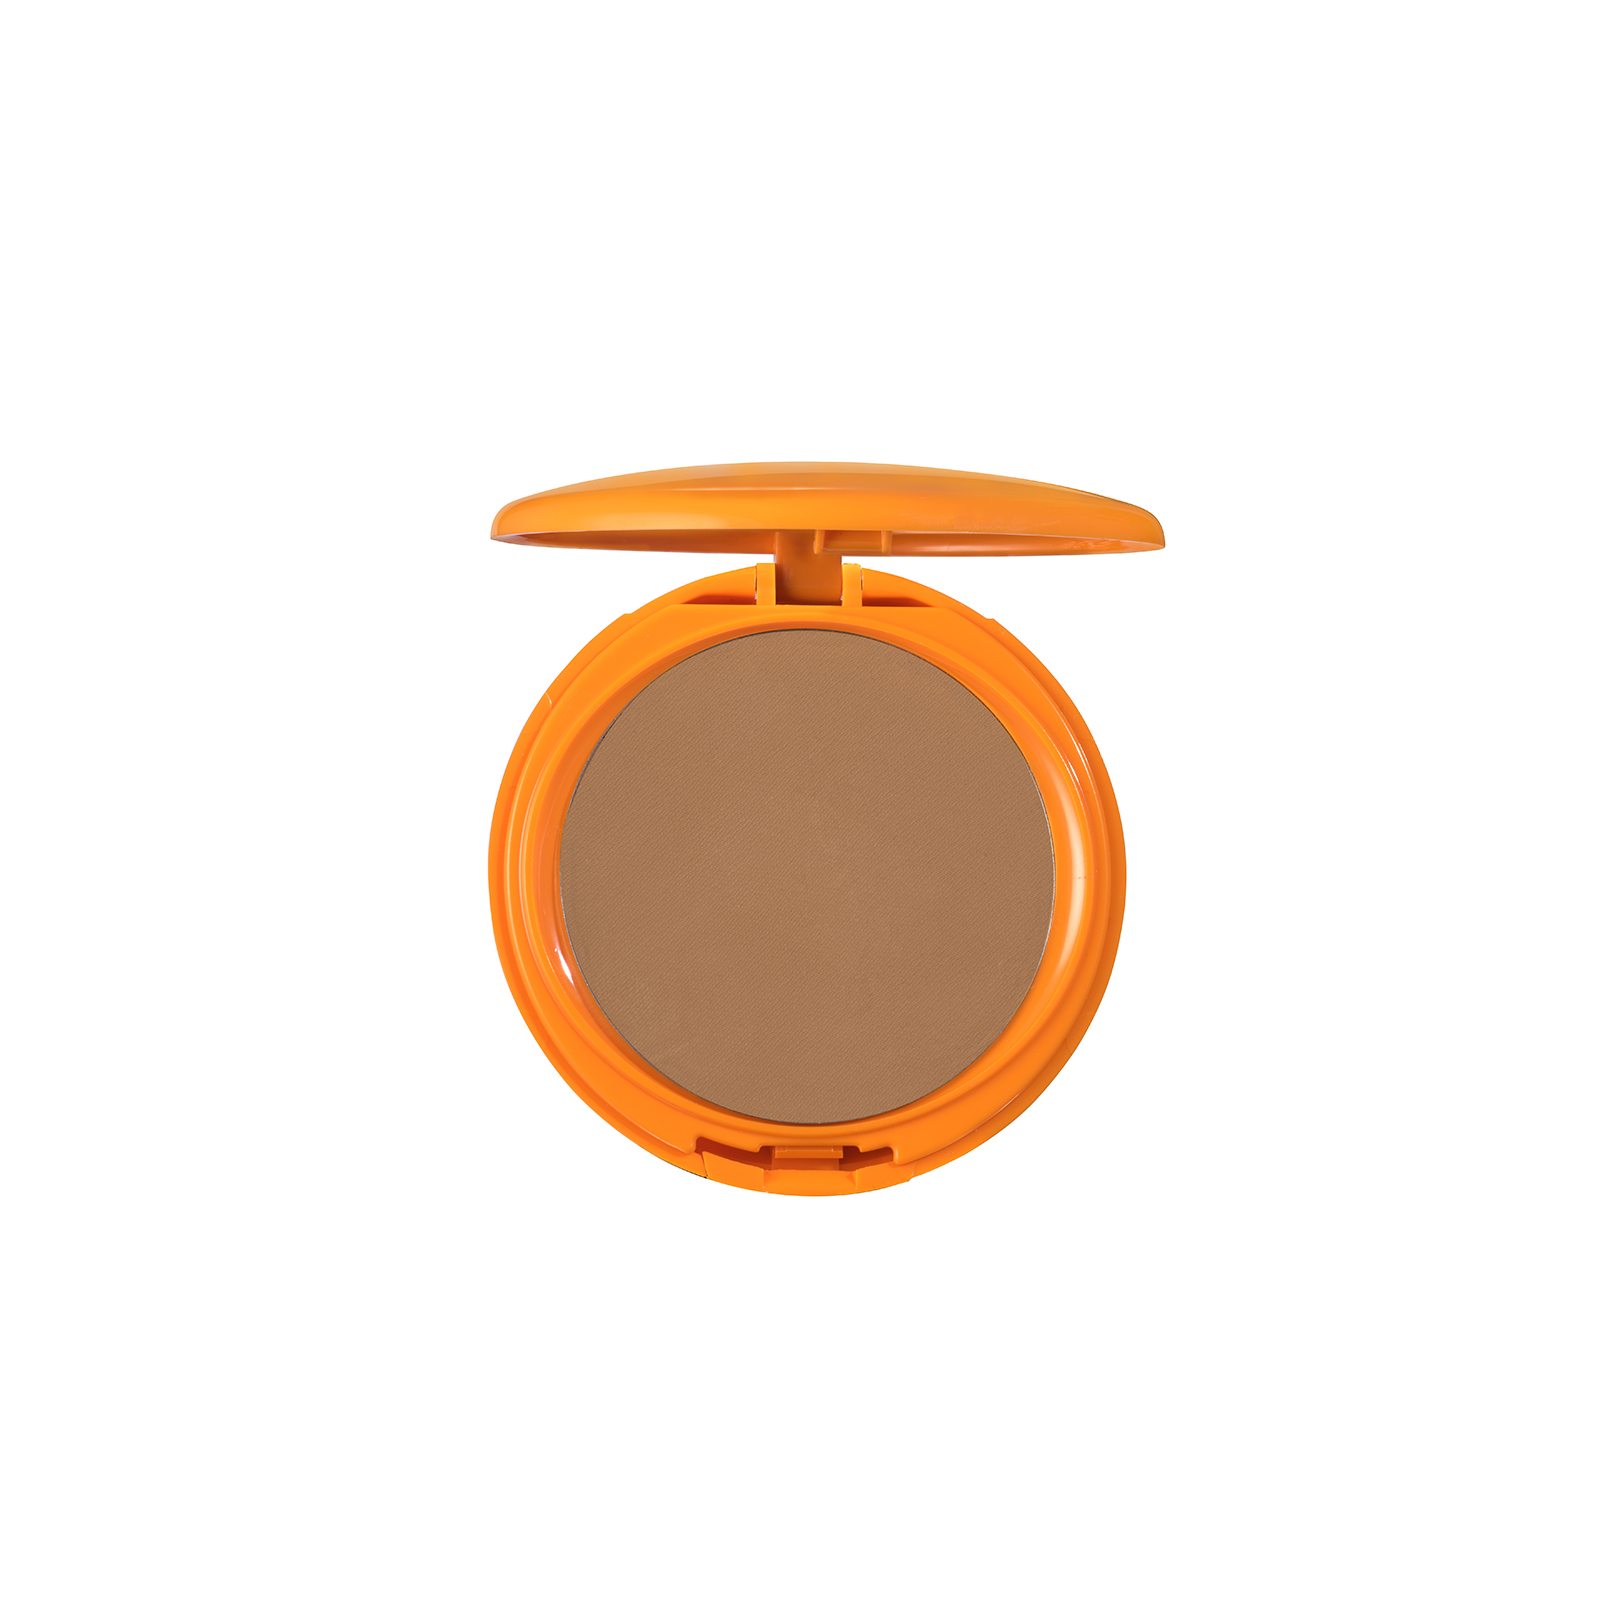 PHOTO AGEING PROTECTION COMPACT POWDER SPF 30 (04 Tan)